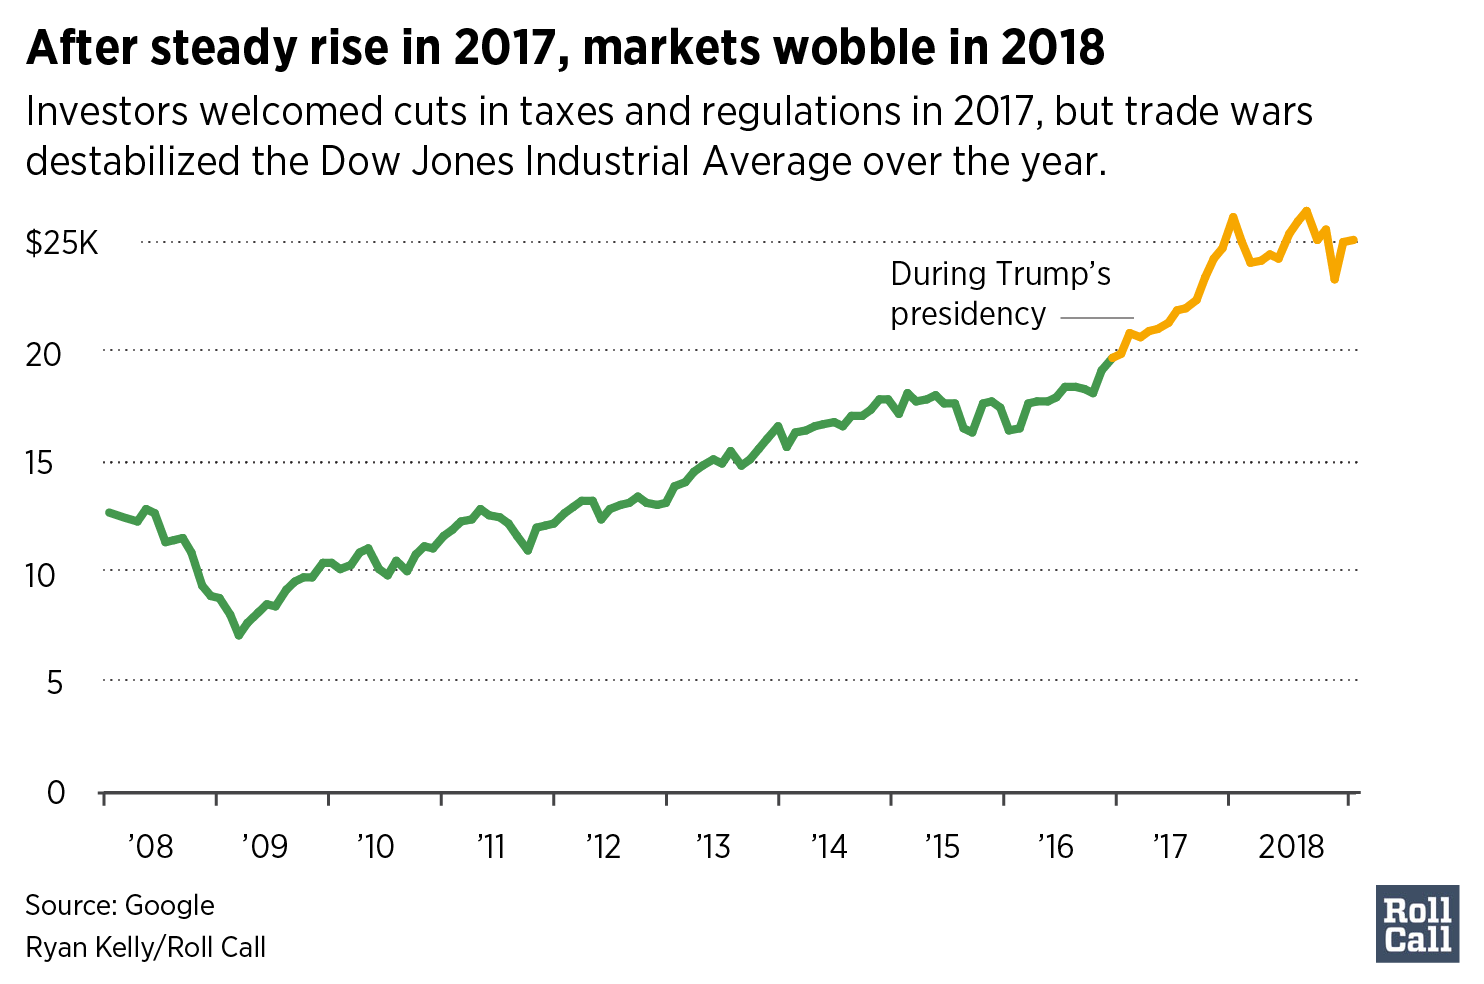 After steady rise in 2017, markets wobble in 2018